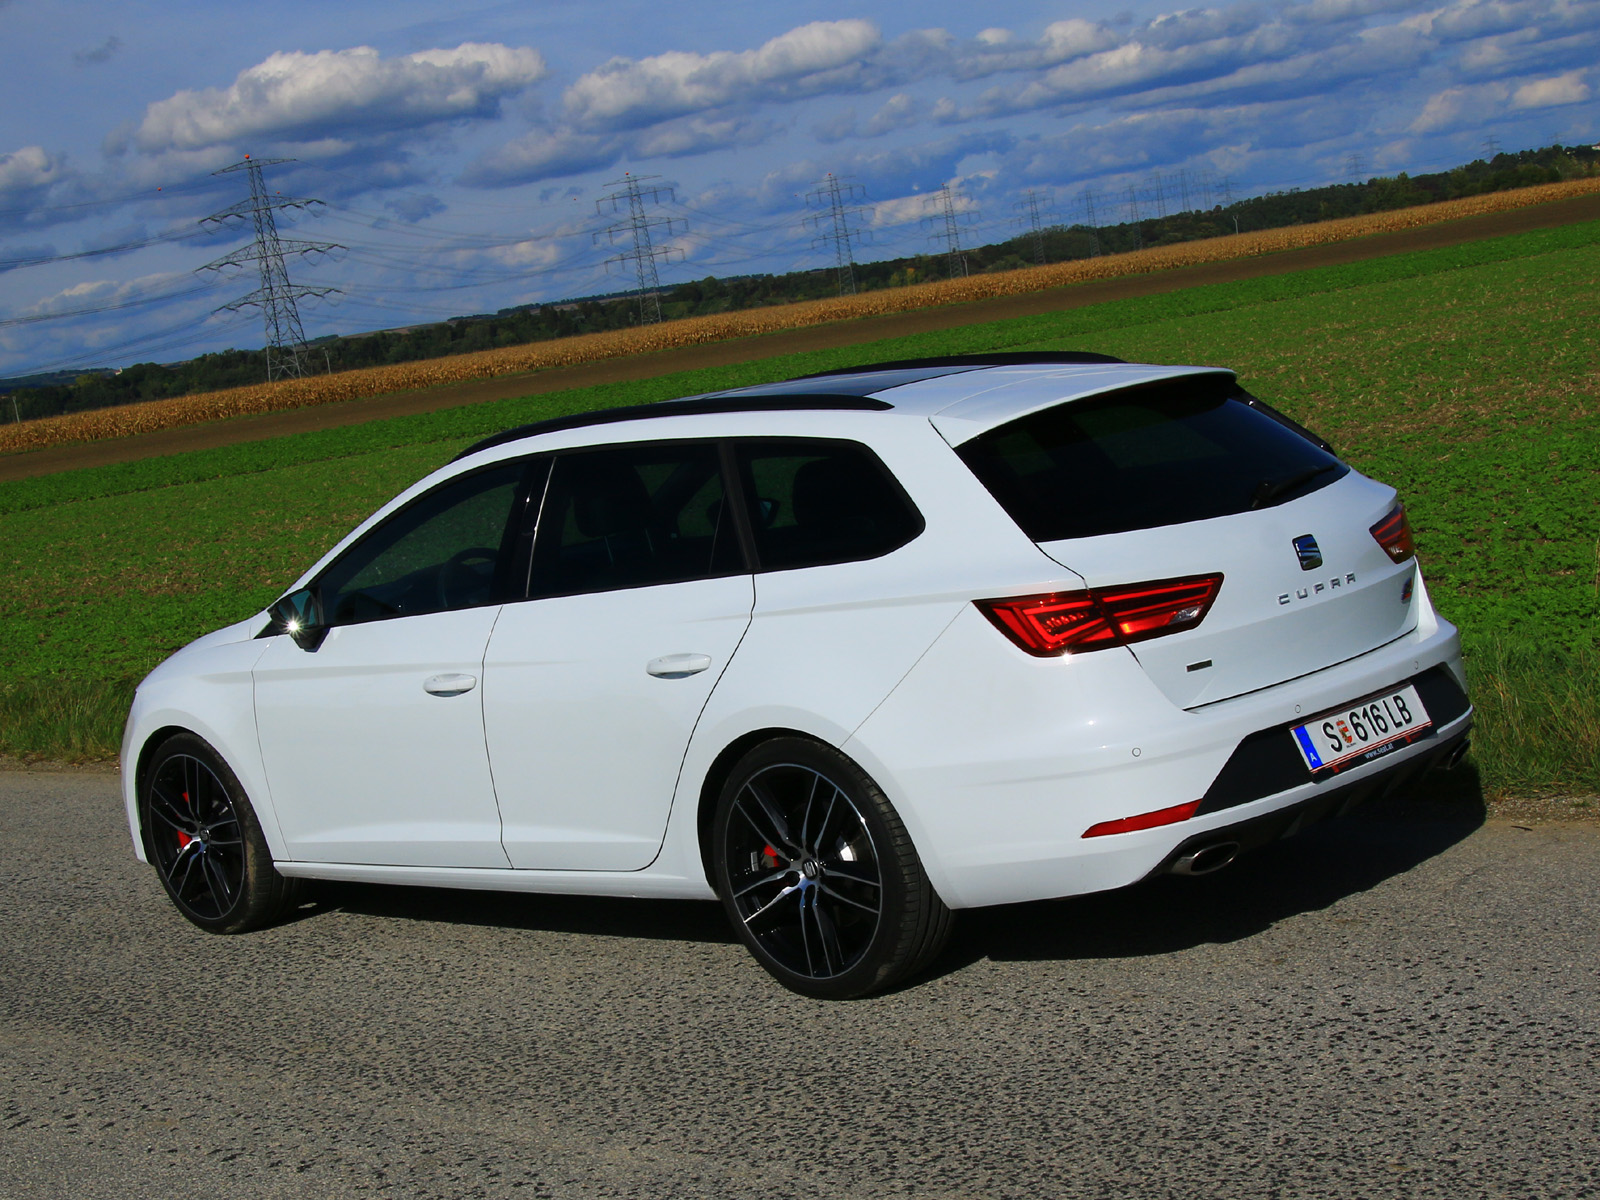 seat leon st cupra 300 tsi dsg 4drive testbericht. Black Bedroom Furniture Sets. Home Design Ideas